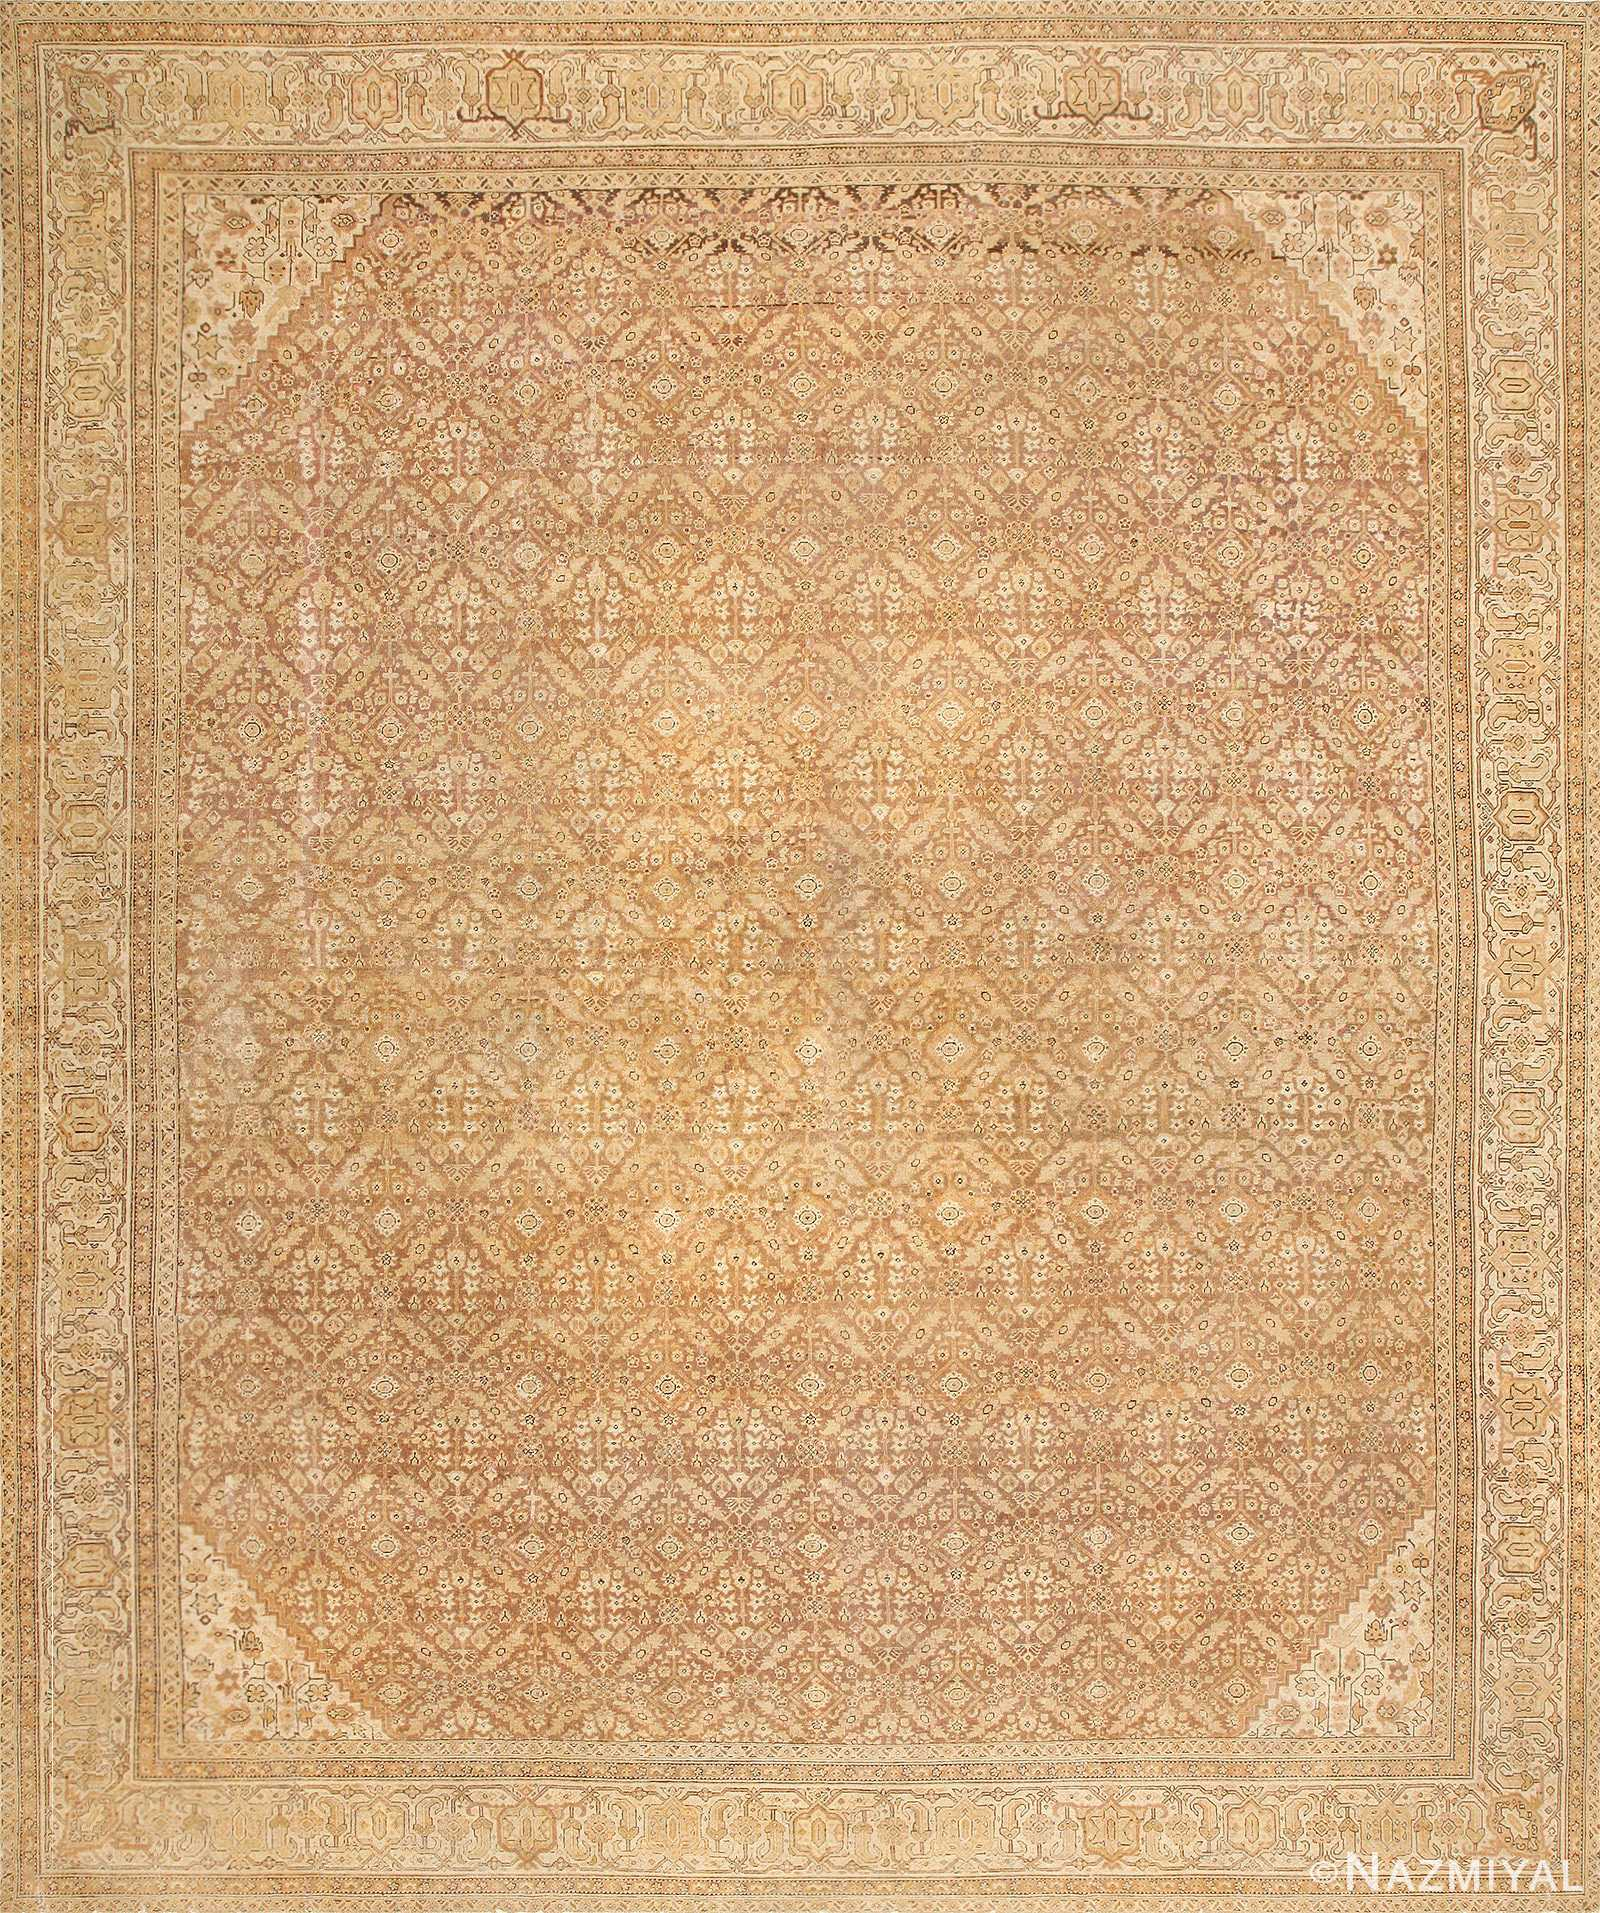 Antique Indian Amritsar Rug 50455 Detail/Large View